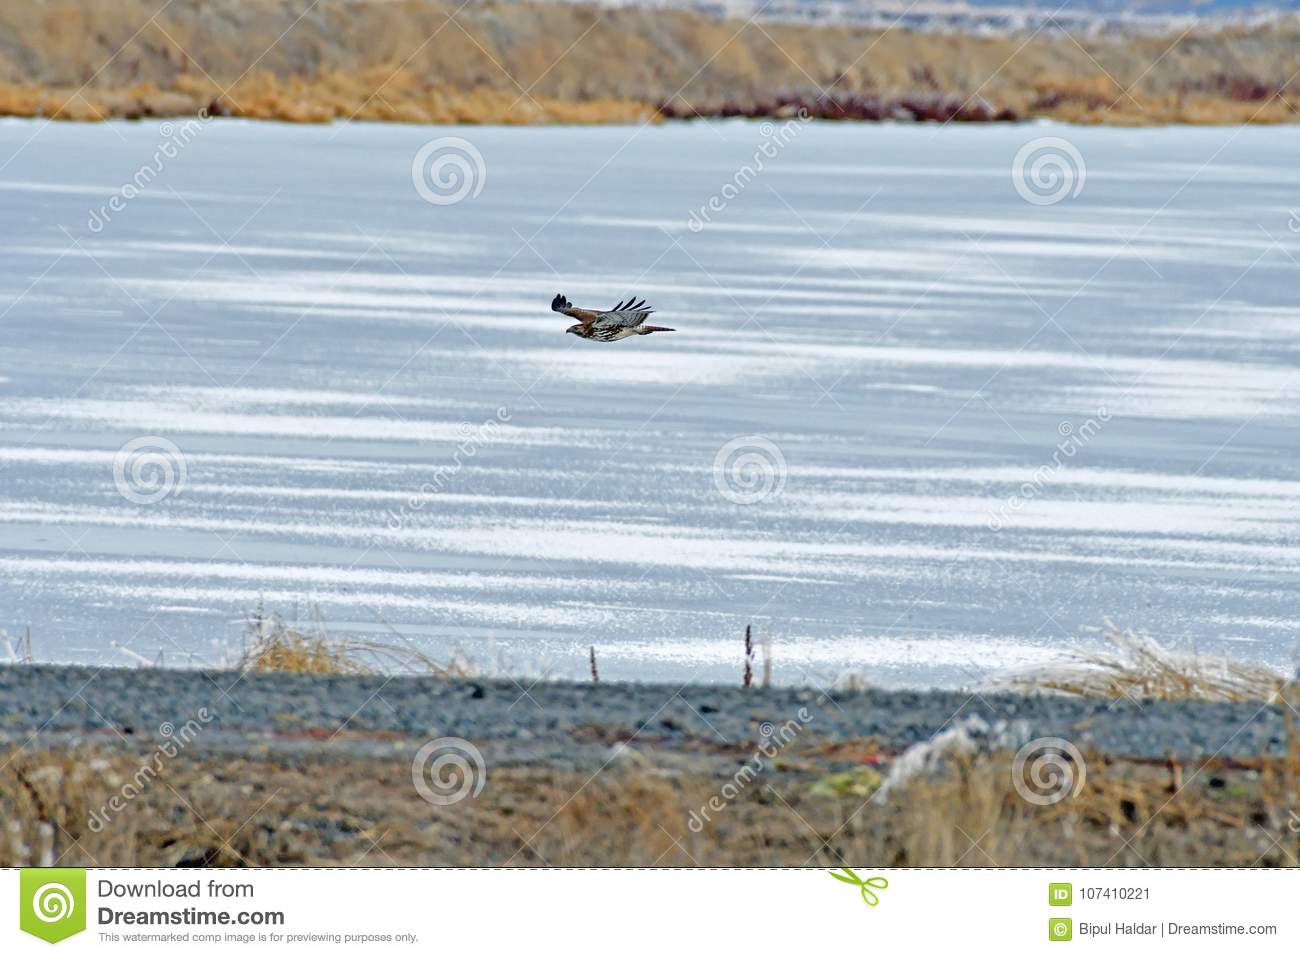 A Hawk flying over the river